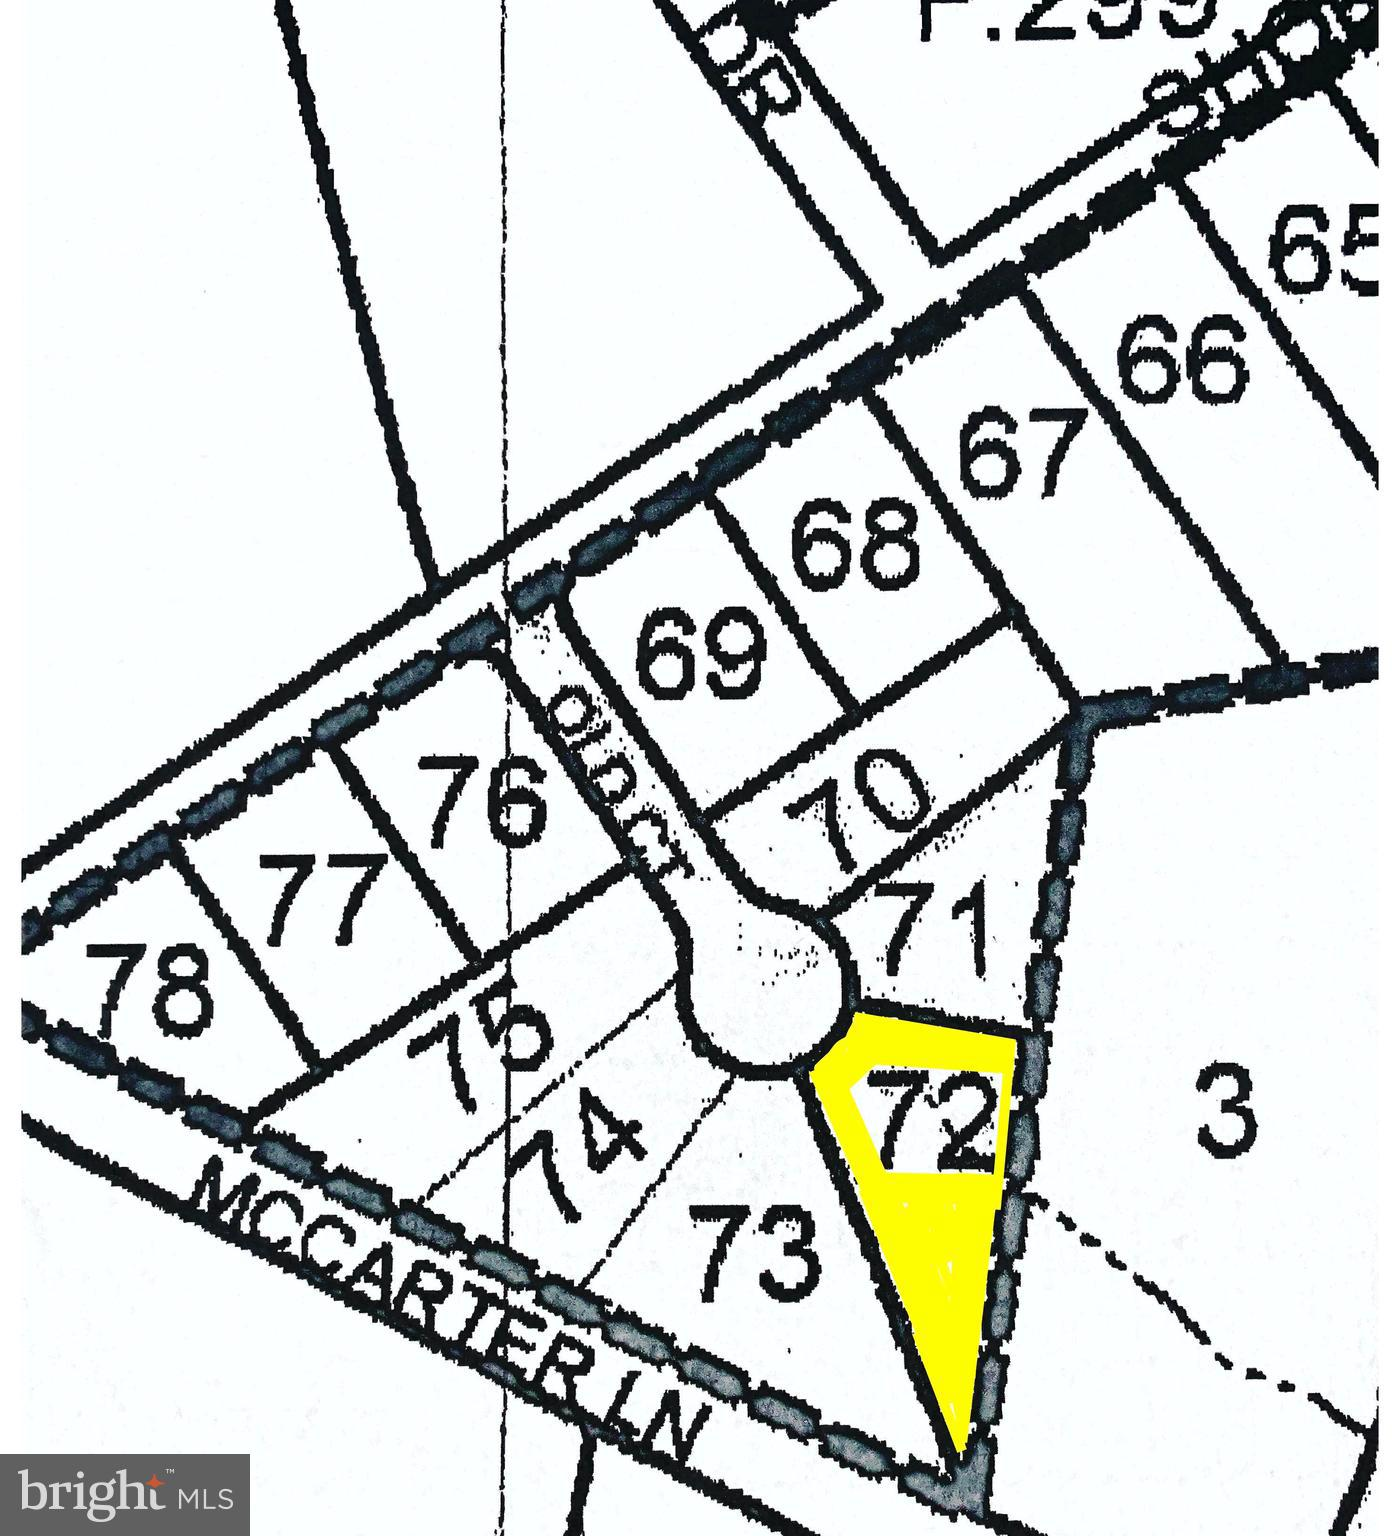 This is lot 72 AKA 1407 Old Ct.      Lots 70, 71 and 72 are each available from this seller.    Public Septic is available but not connected.   Property would require a well for water.   Located in Critical Area, the county planner of the day verbally stated they will allow tree removal on 30% of the lot.   Buyer will need to verify.   No sign on property.    Old Ct is a cul-de-sac paper road located between and behind 4105 Shoreham Beach Rd and 4101 Shoreham Beach Rd.  Property may include wetlands.  Buyer will need to verify.